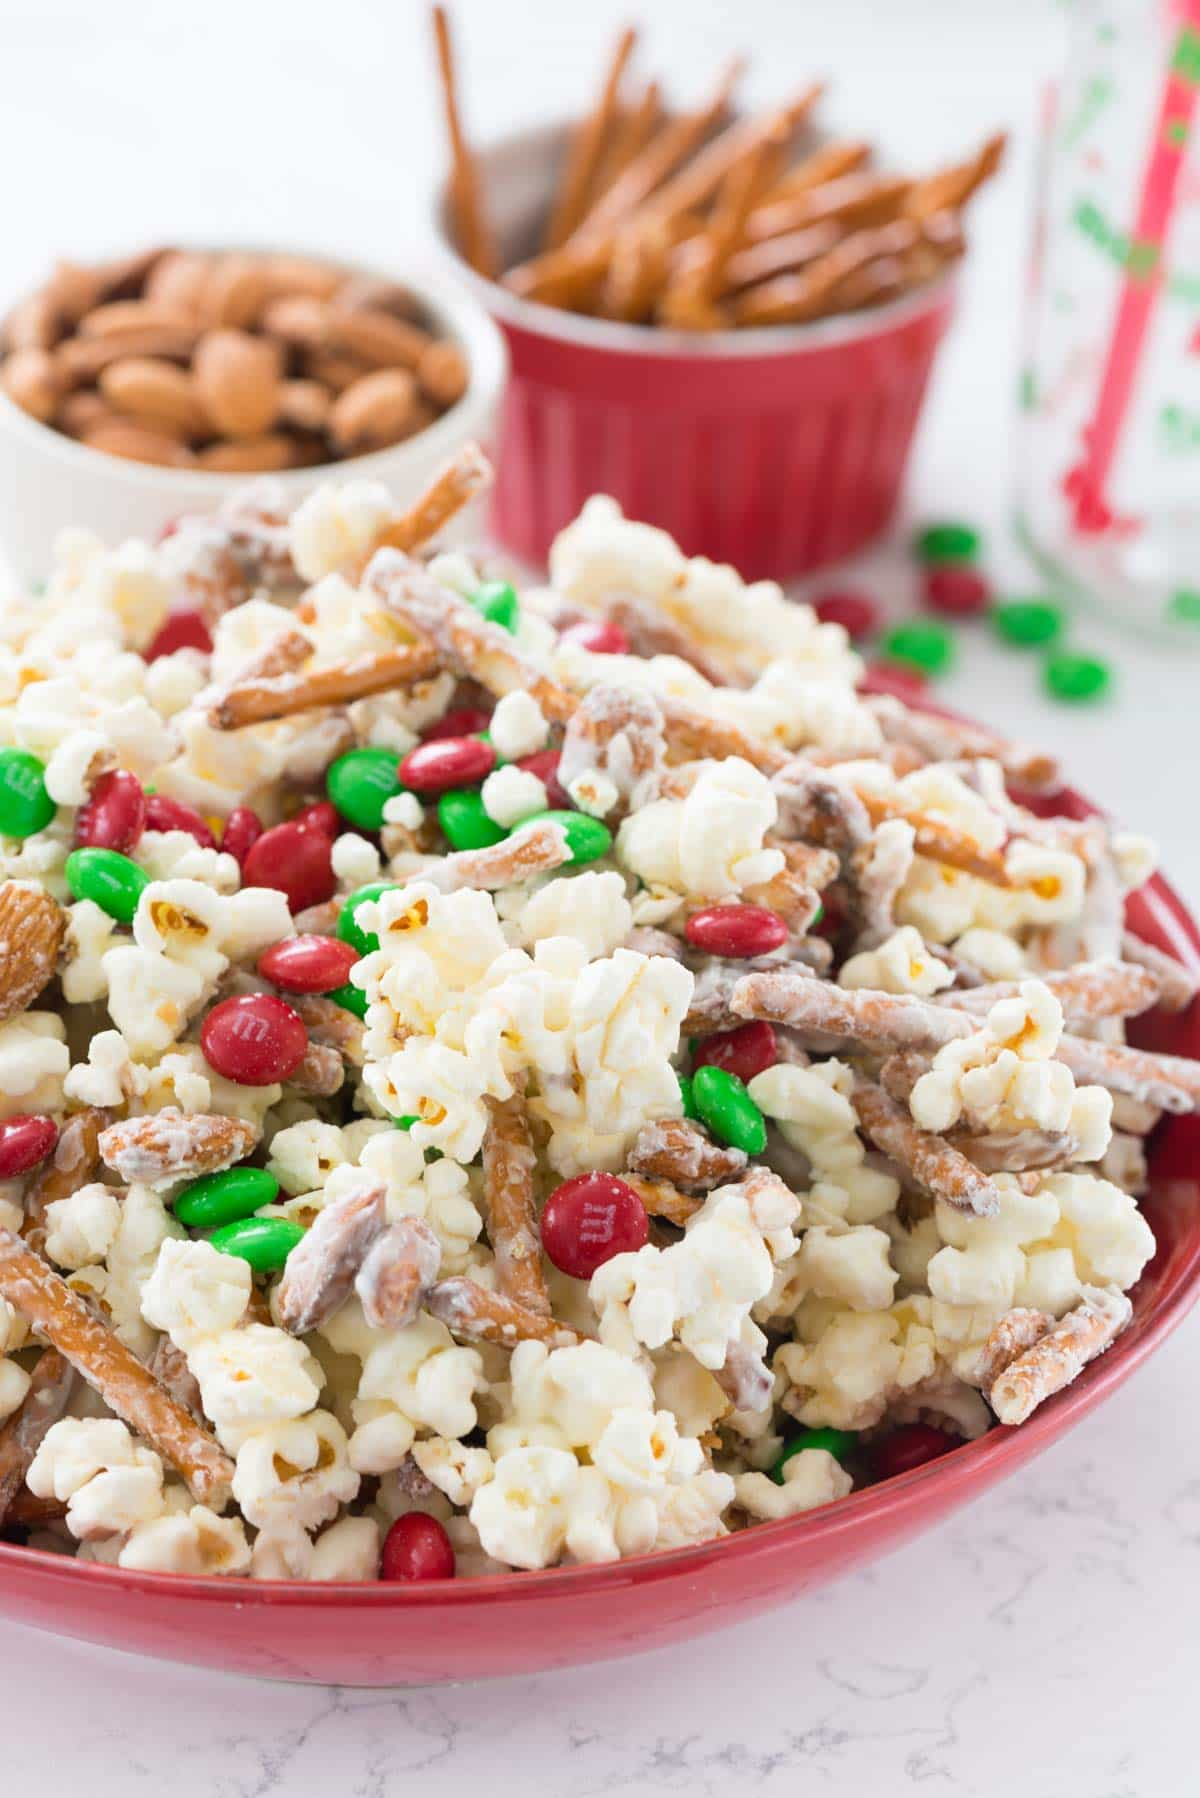 Santa Munch Mix - this EASY 5 ingredient Popcorn Snack Mix is coated in white chocolate and makes the perfect snack for Christmas! Santa loves it...but the kids do too!